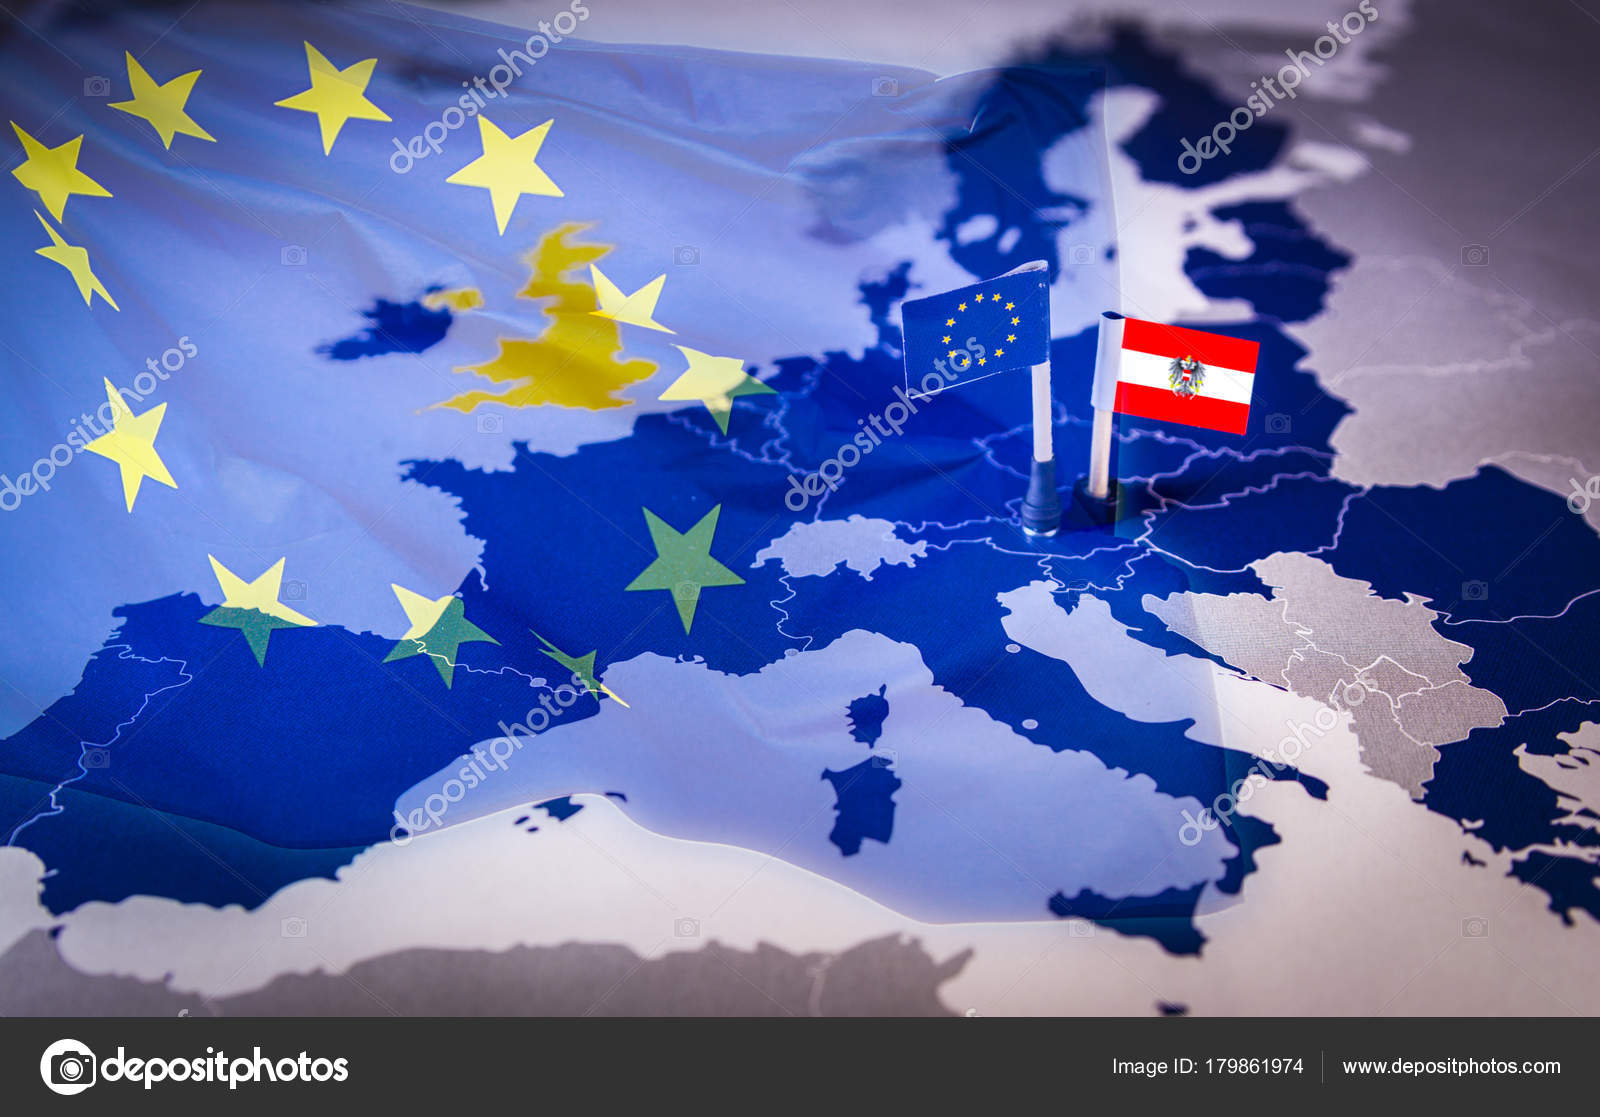 EU and Austria flag over an european union Map     Stock Photo      tbtb     EU and Austria flag over an european union Map     Stock Photo